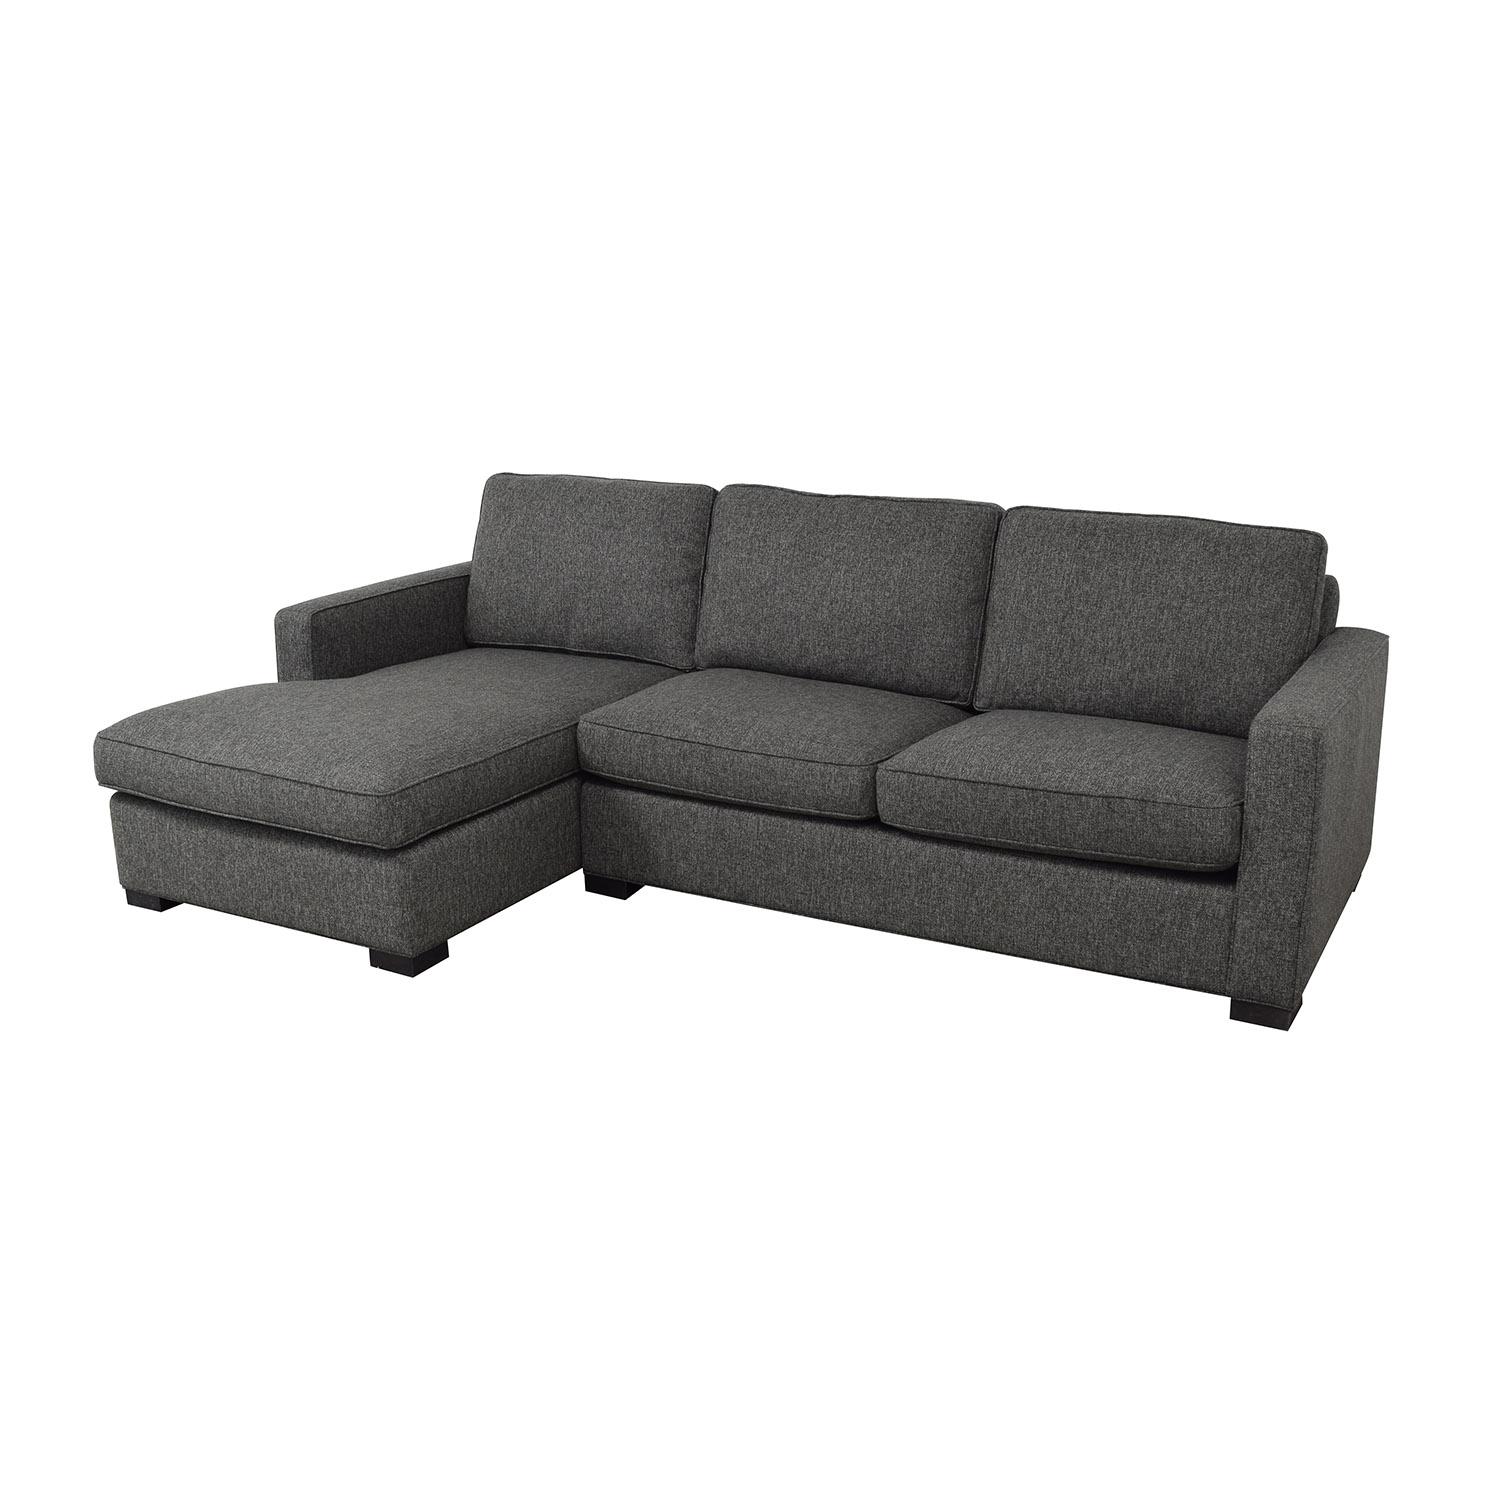 Room & Board Room & Board Morrison Sofa with Left-Arm Chaise discount